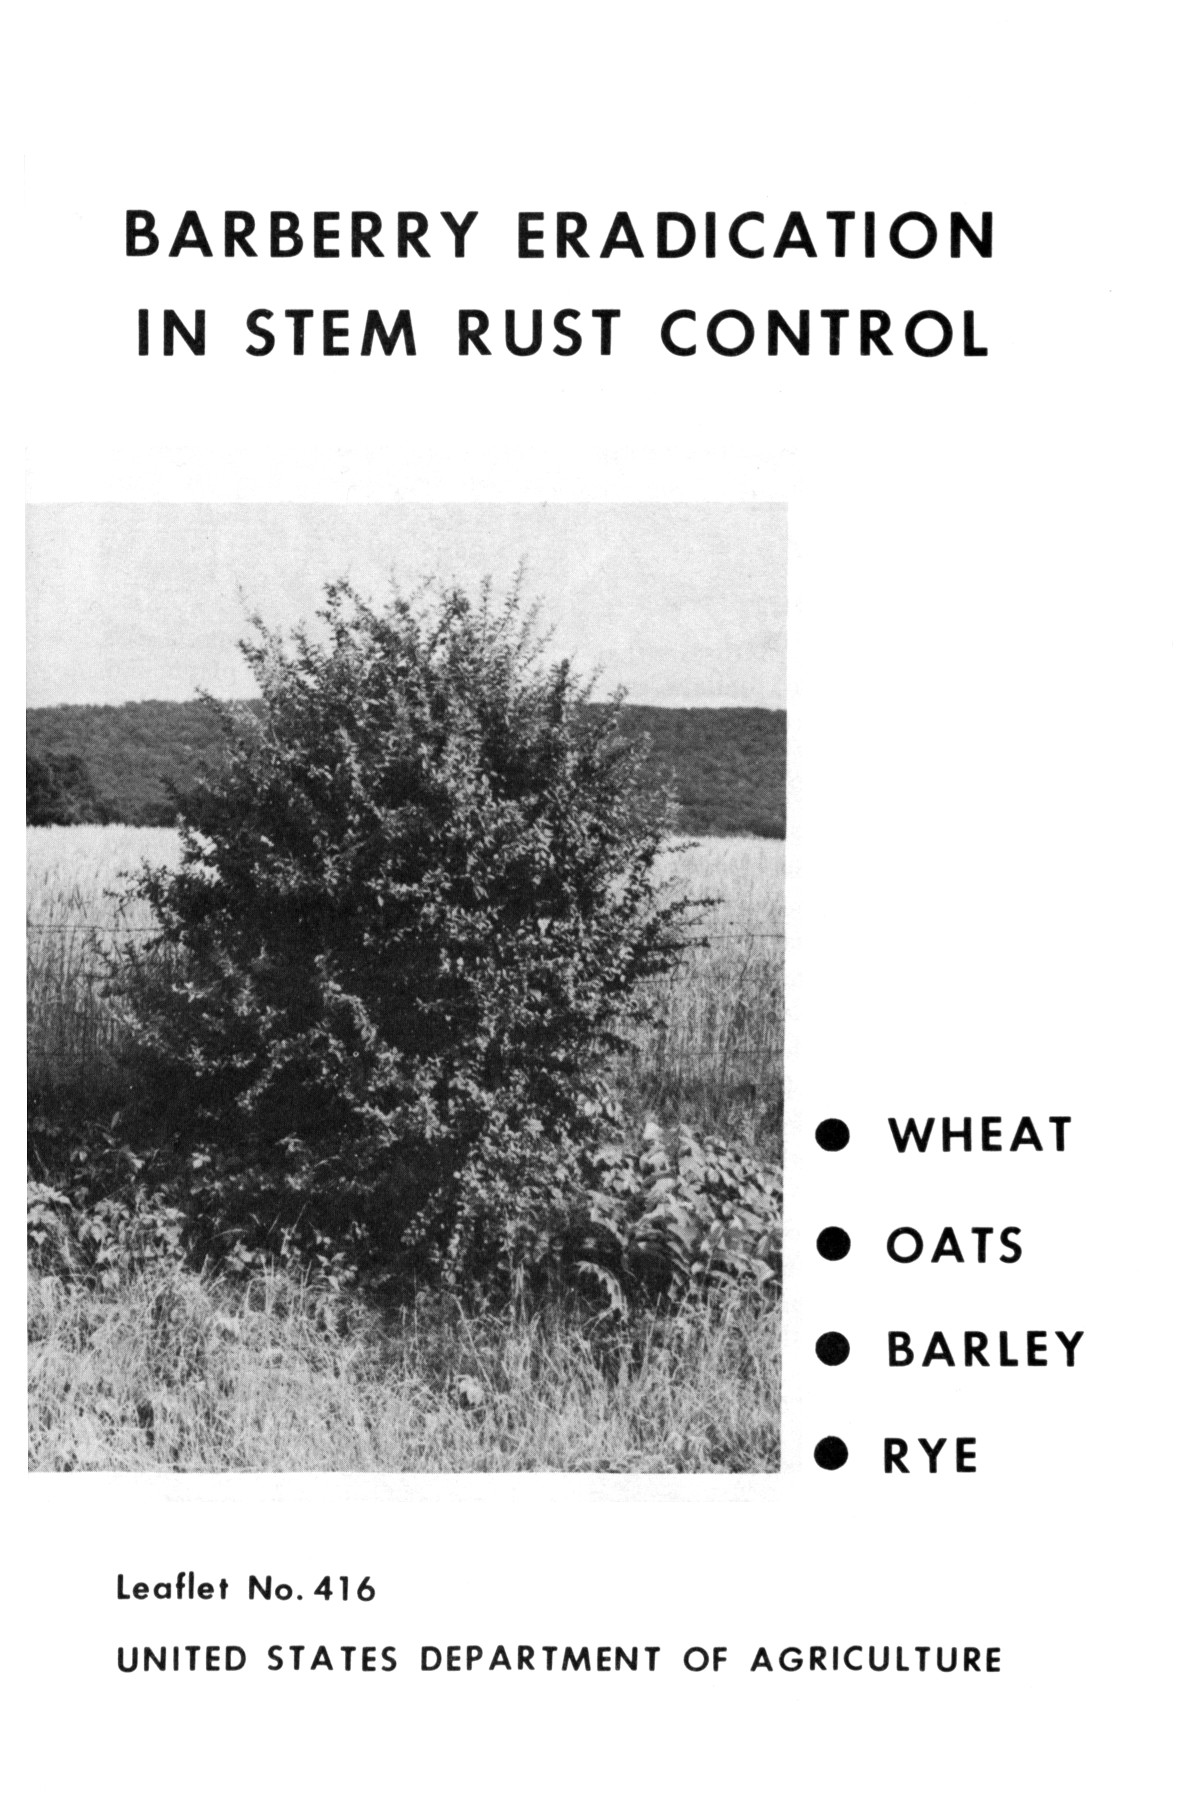 Barberry eradication in stem rust control: wheat, oats, barley, rye.                                                                                                      1